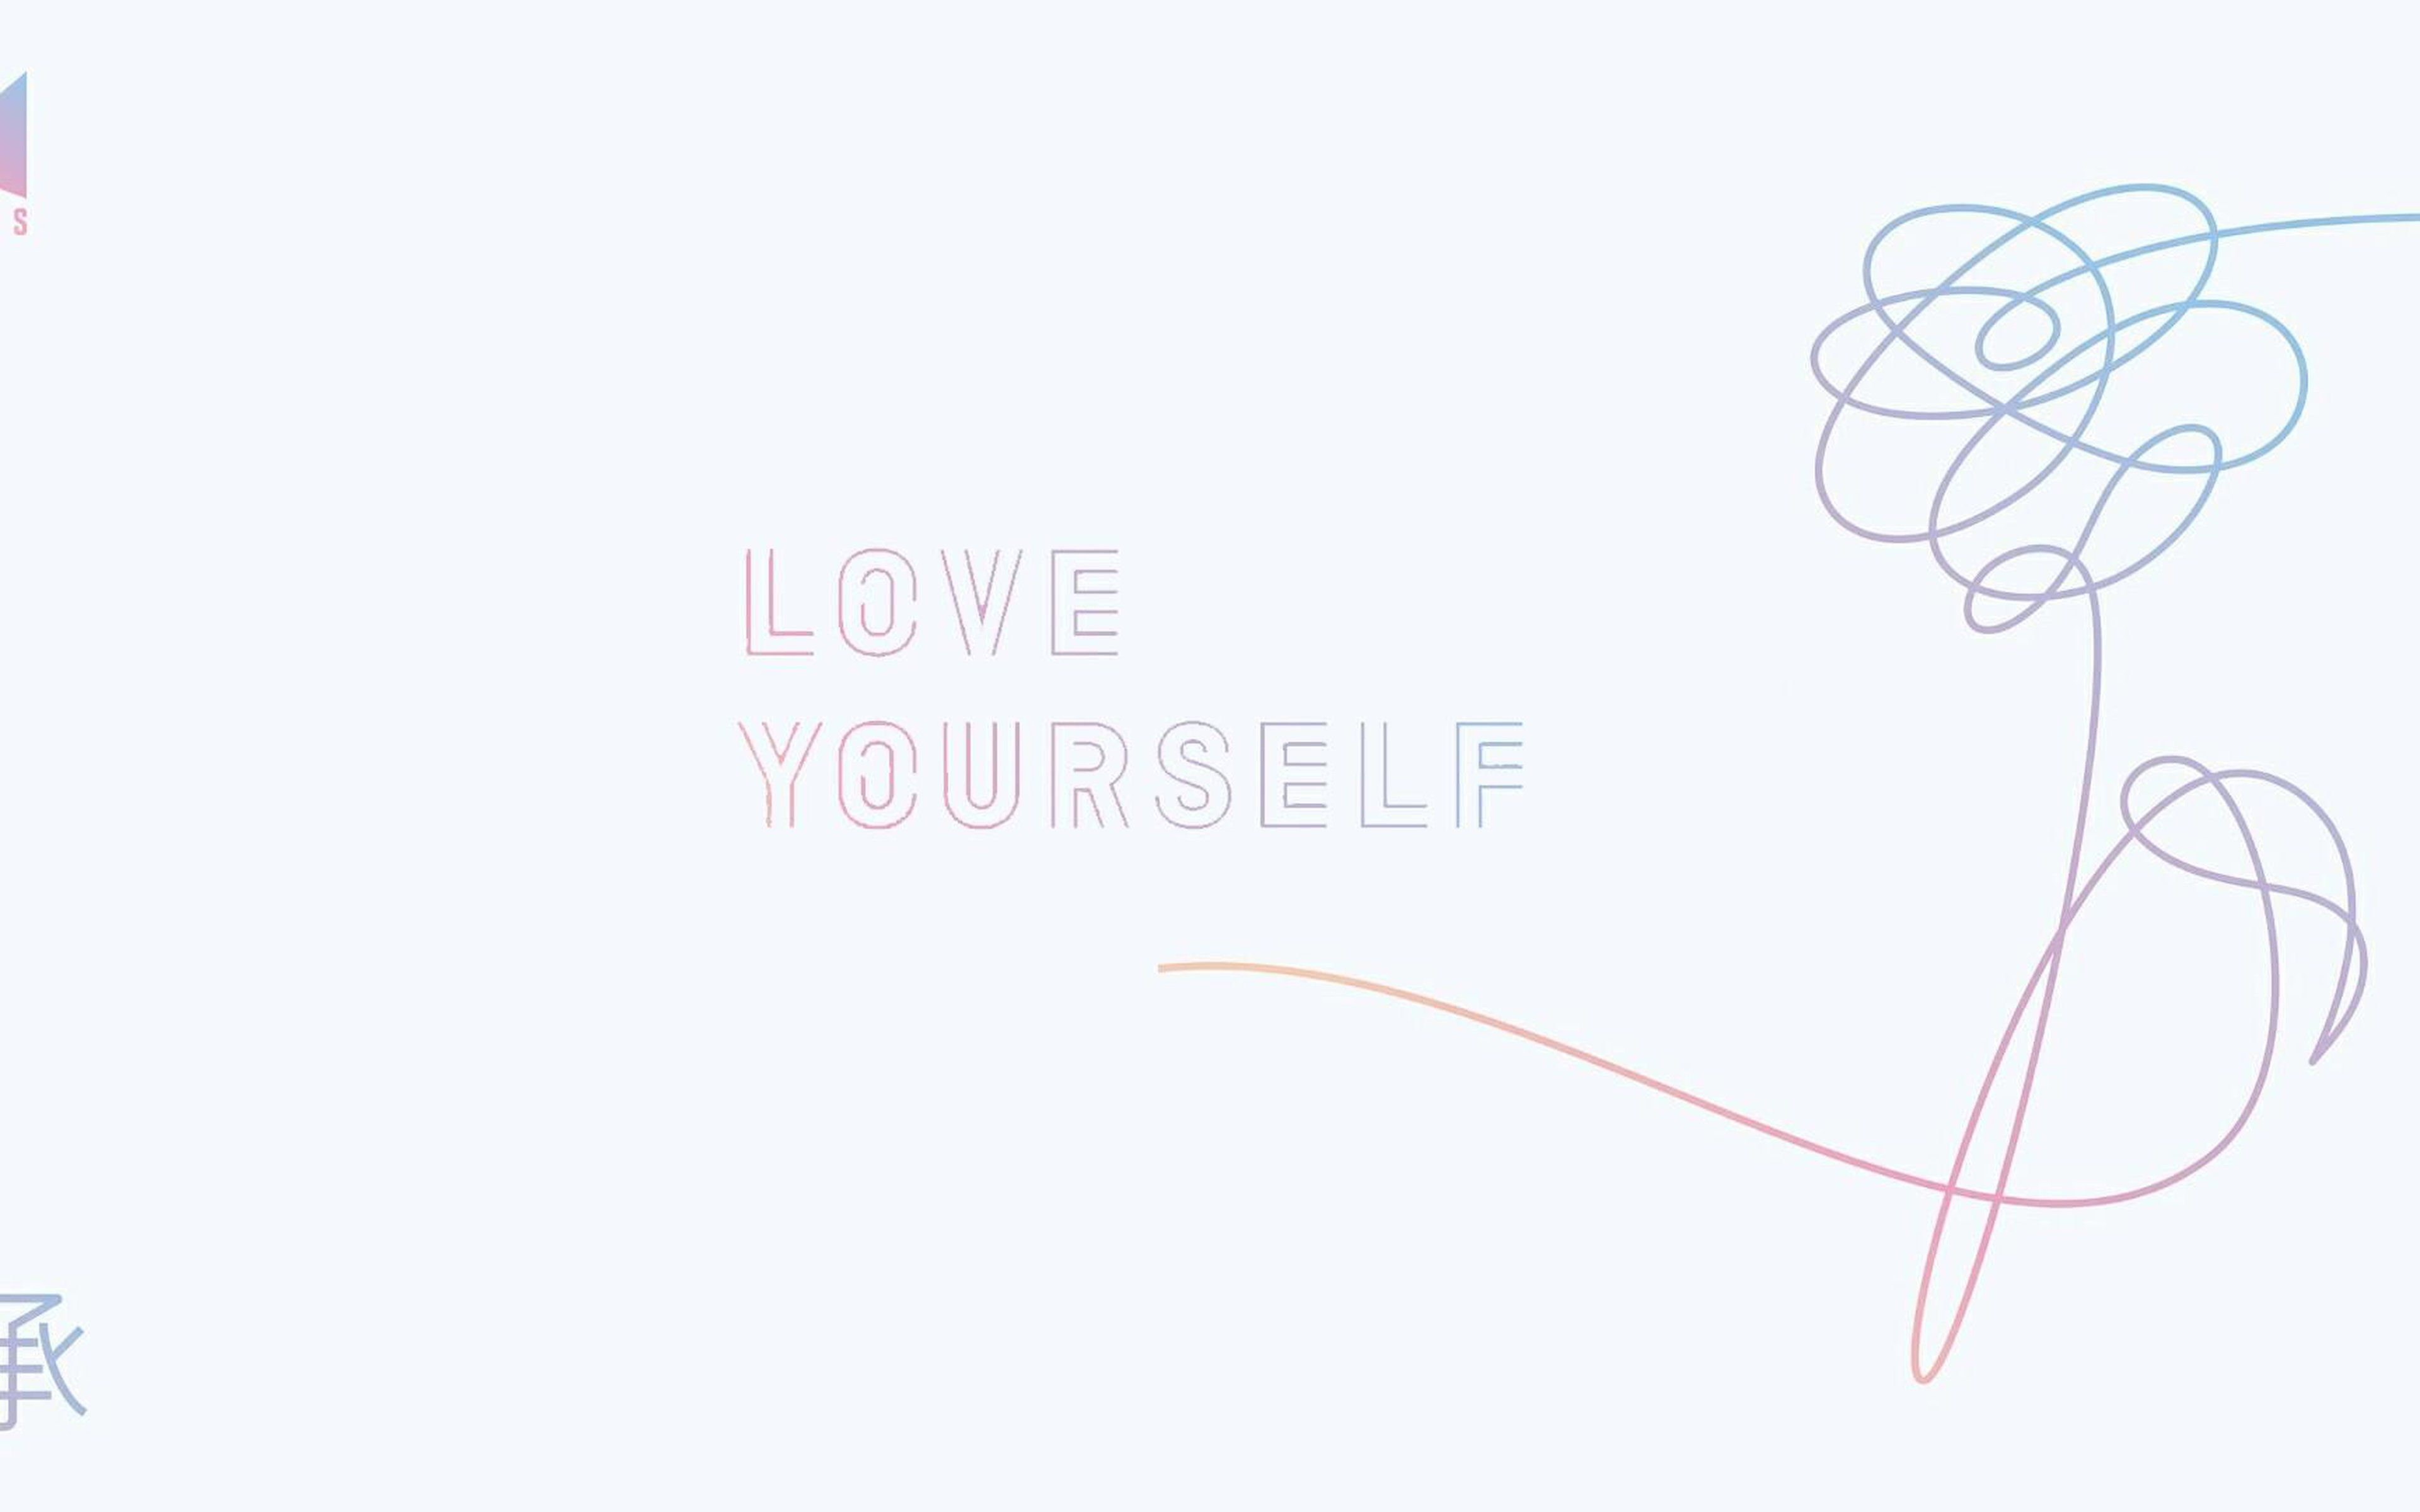 Bts Laptop Wallpaper Bts Love Yourself Wallpaper Desktop Hd